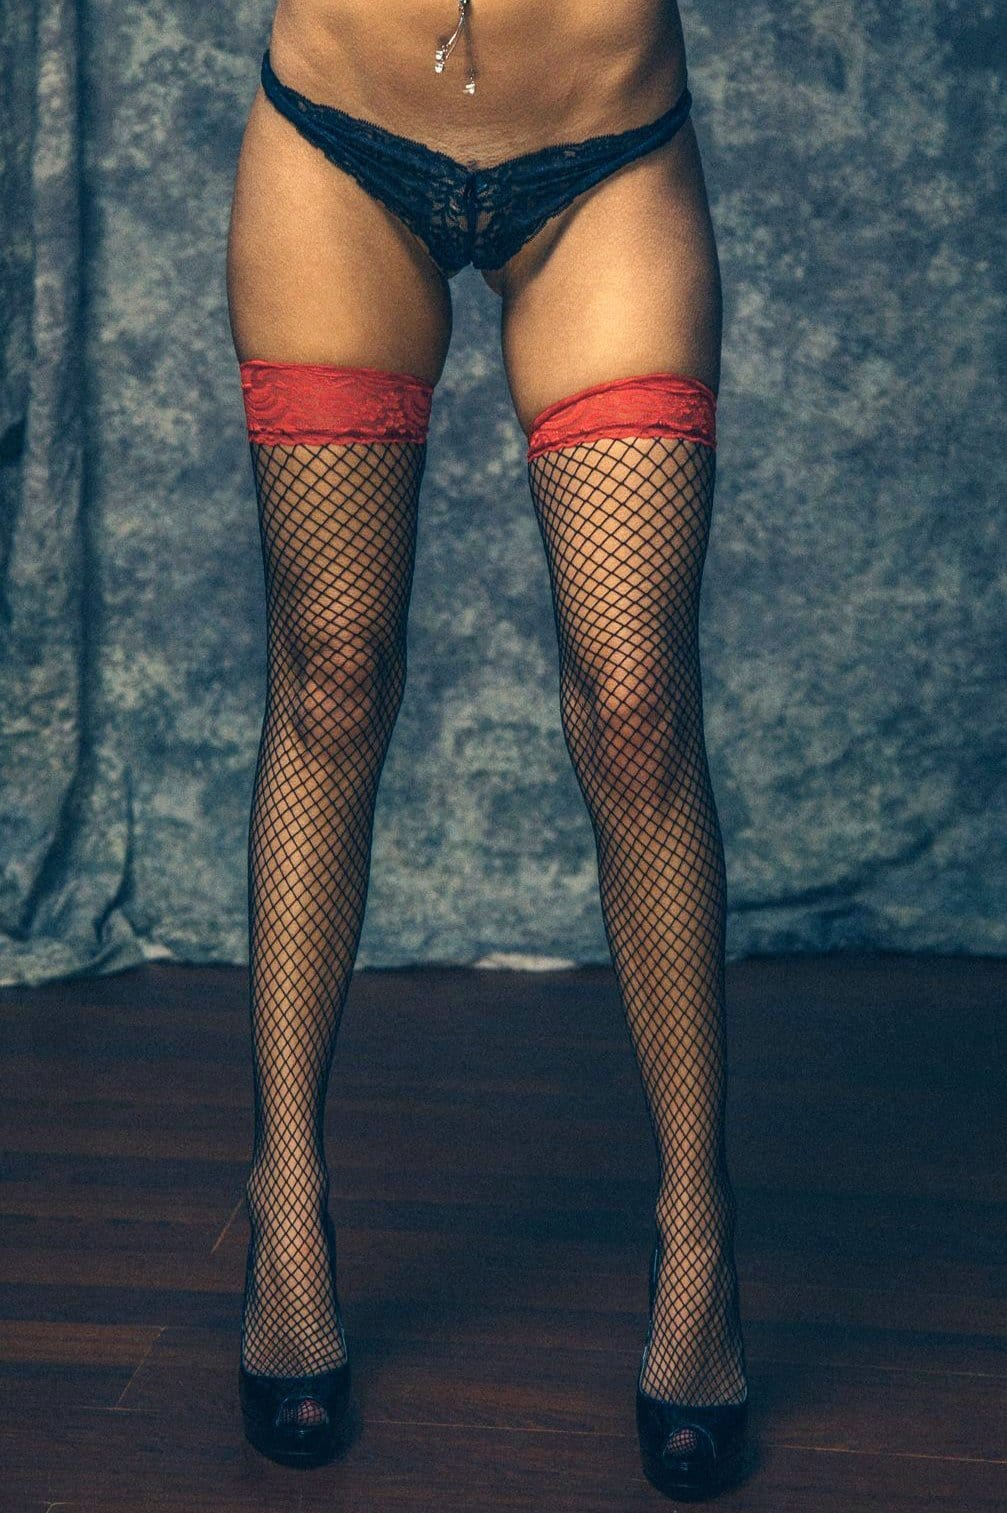 Black fishnet thigh highs sock / stockings with red elastic tops -socks, thigh-high, stockings, lingerie - Cali Diamond